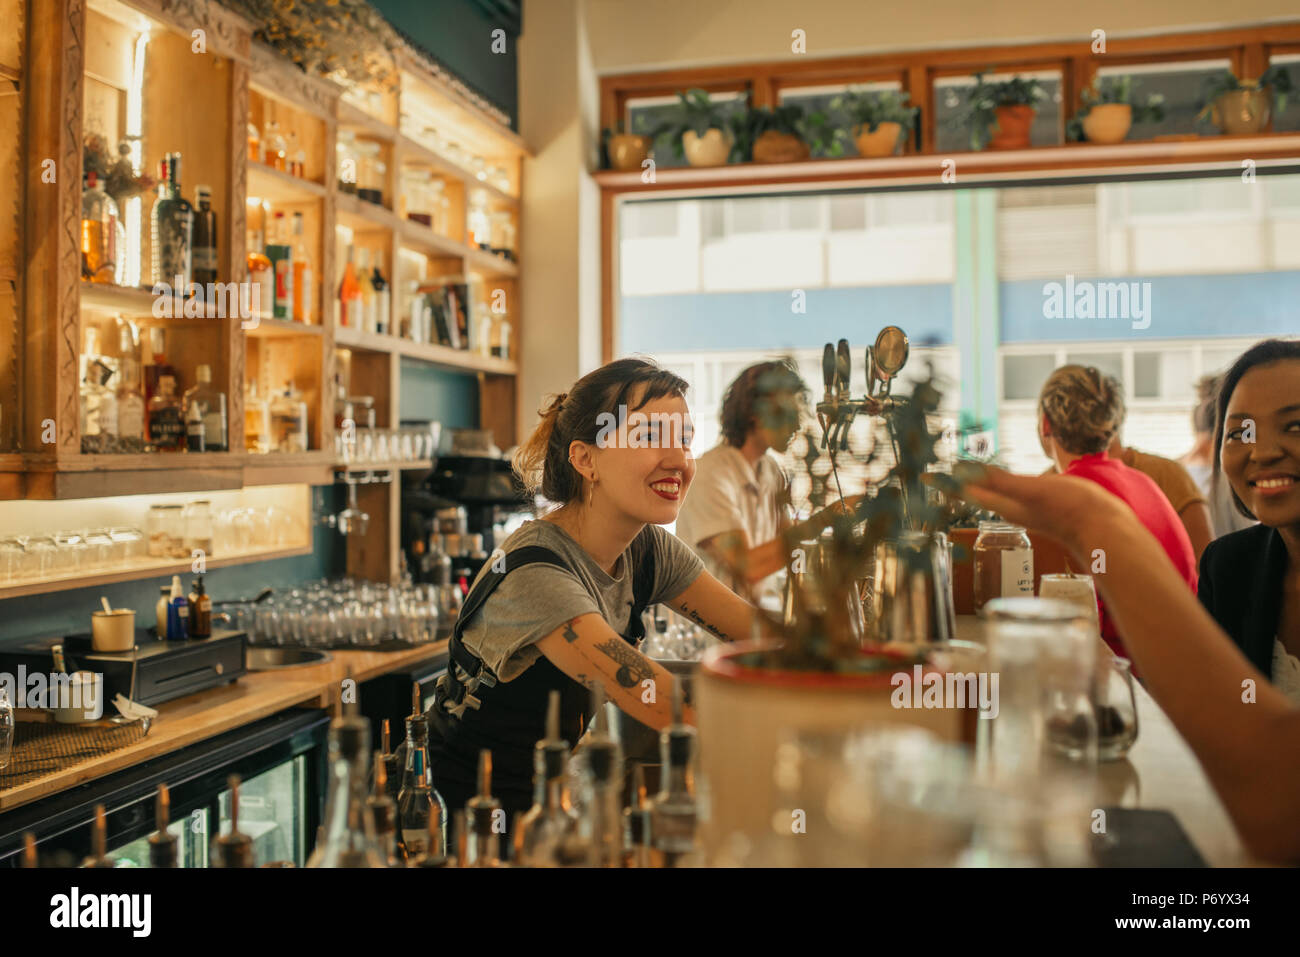 Smiling female bartender talking with customers at a bar counter - Stock Image